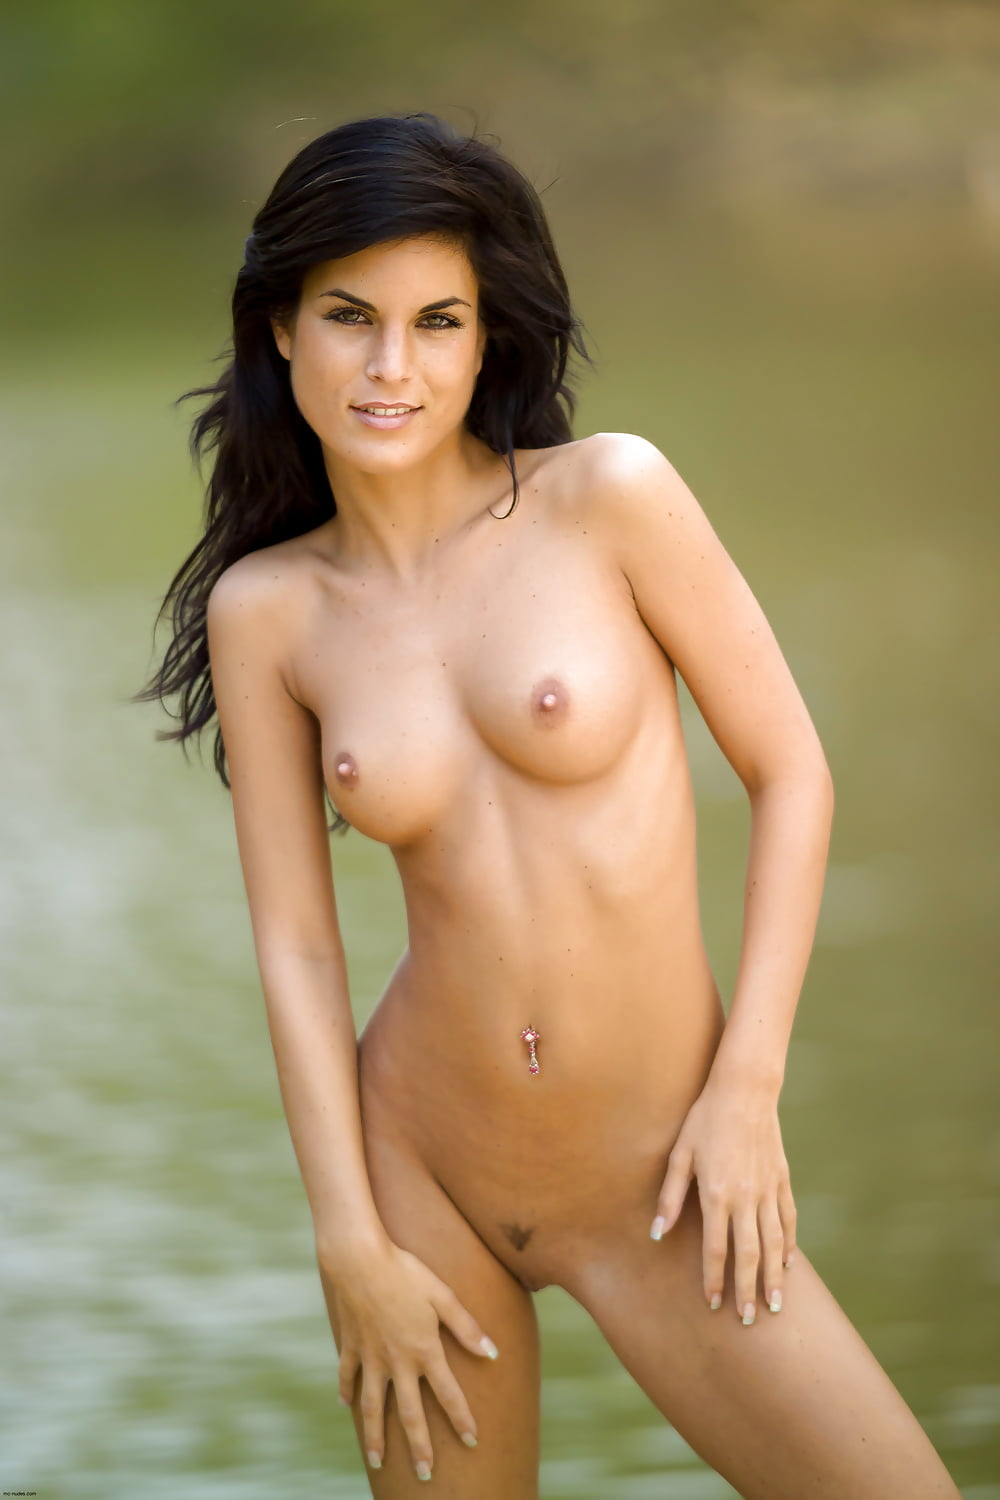 Nude pictures for nelly makdessy